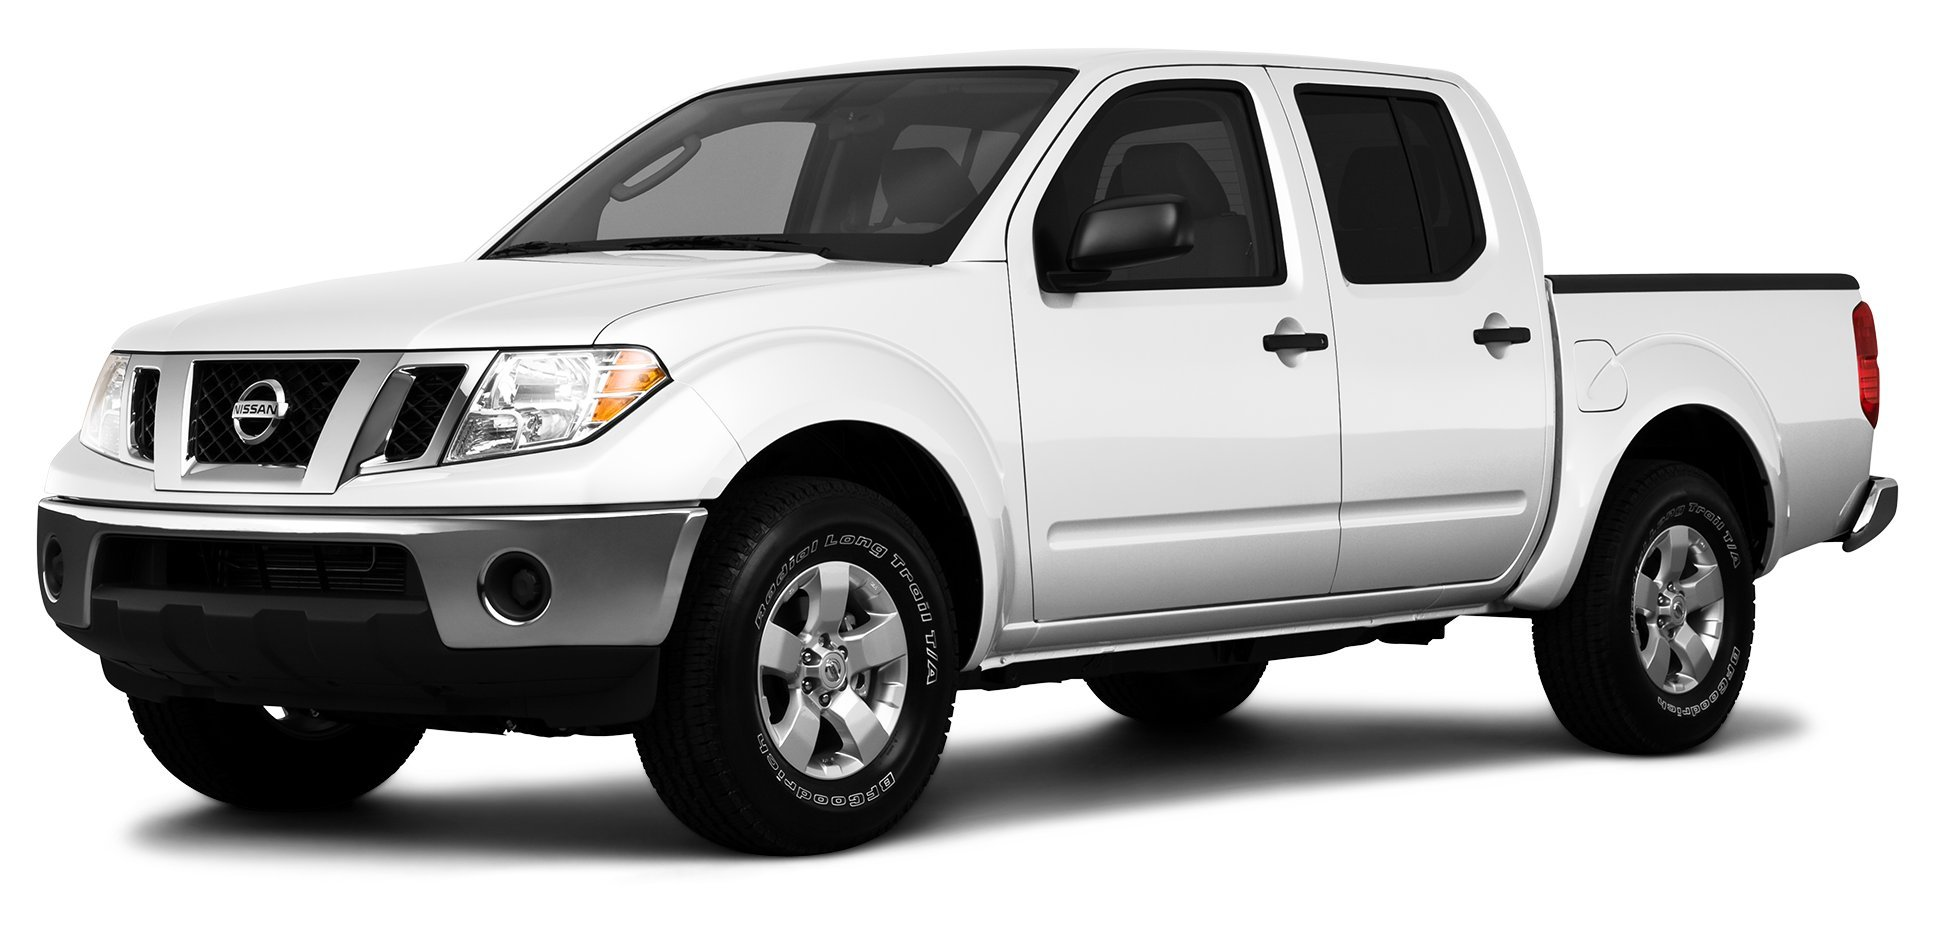 ... 2010 Nissan Frontier SE, 2-Wheel Drive Crew Cab Long Wheelbase Manual Transmission